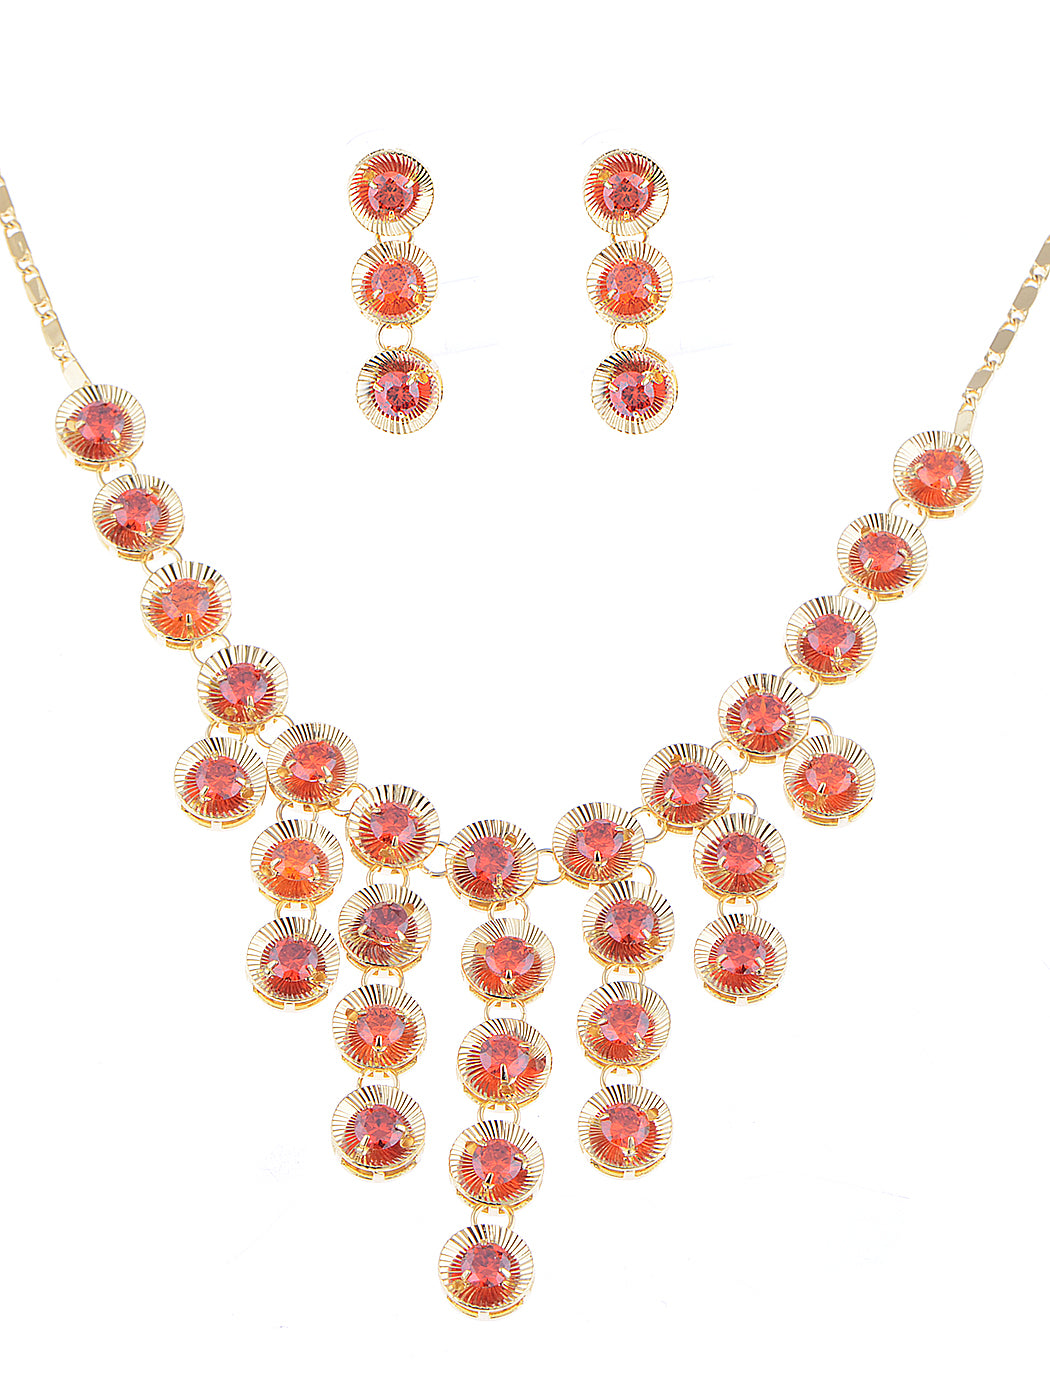 Swarovski Crystal Ruby Red 1960S Cascade Necklace Earring Set